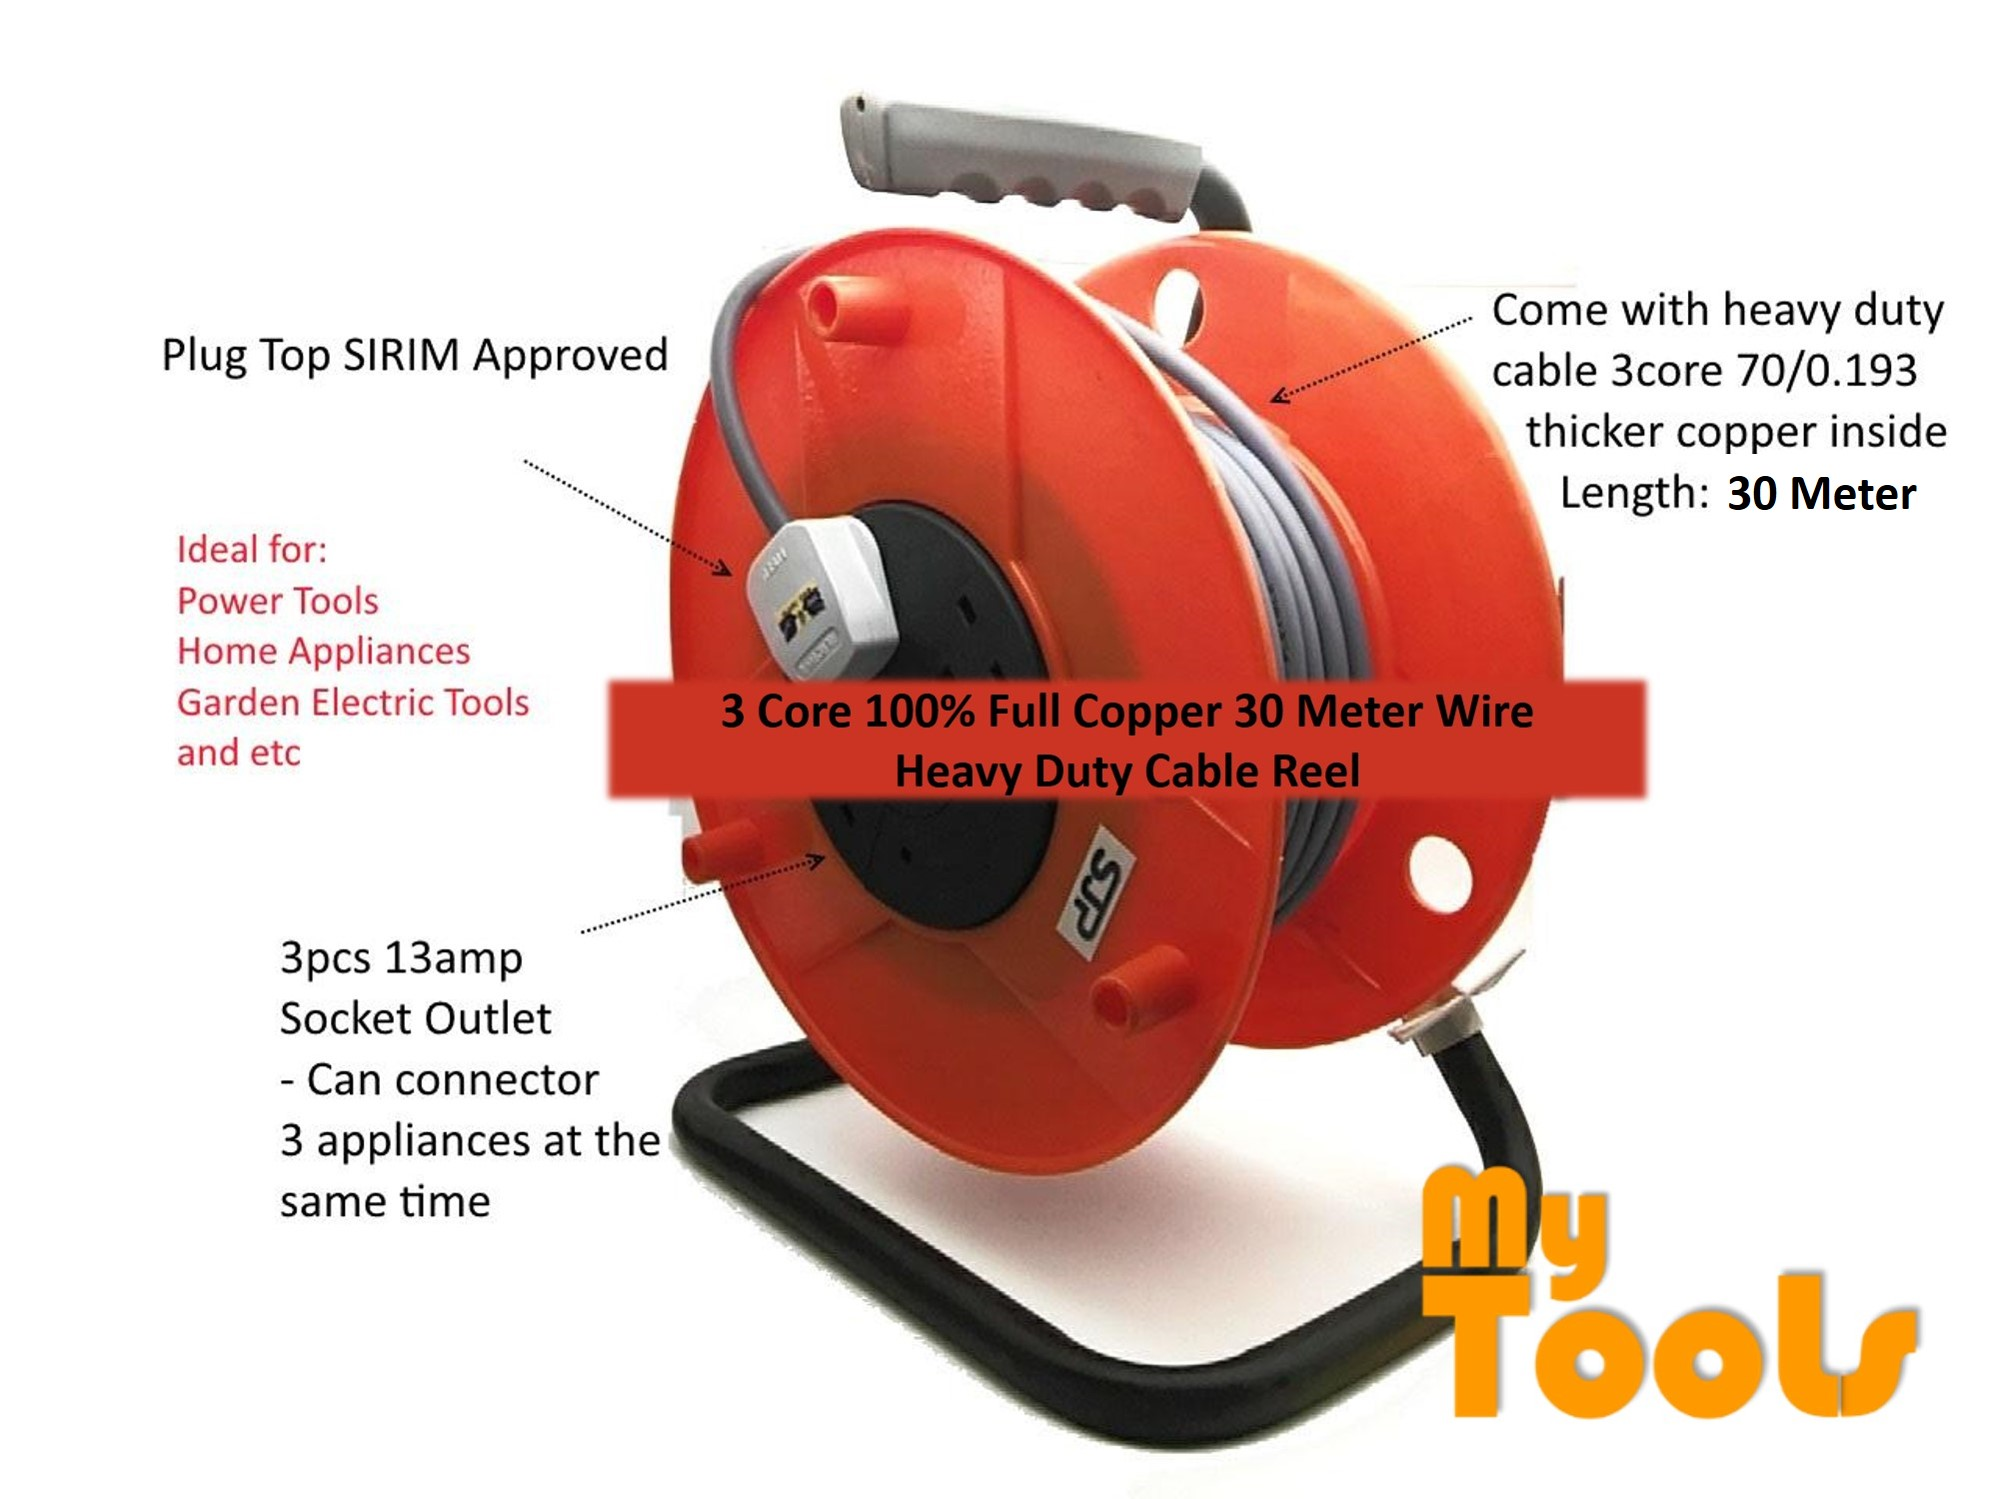 Buatan Malaysia SJP Cable Reel Set c/w 30Meter 3 Core 70 Full Copper Cable Heavy Duty